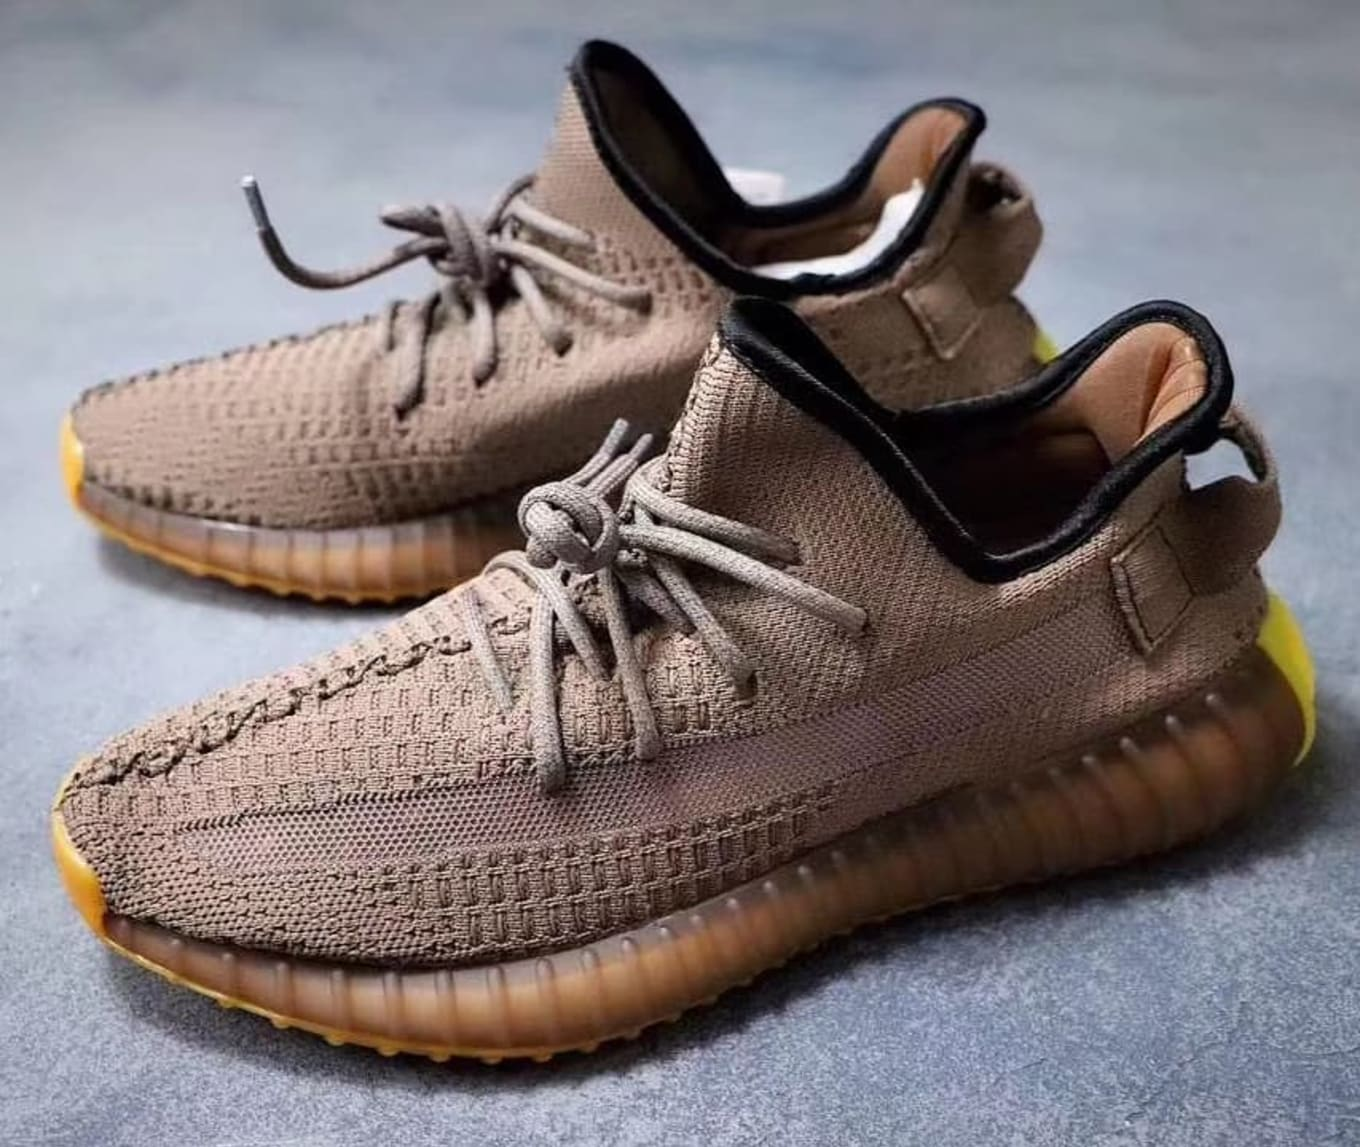 New adidas Yeezy Boost 350 V2